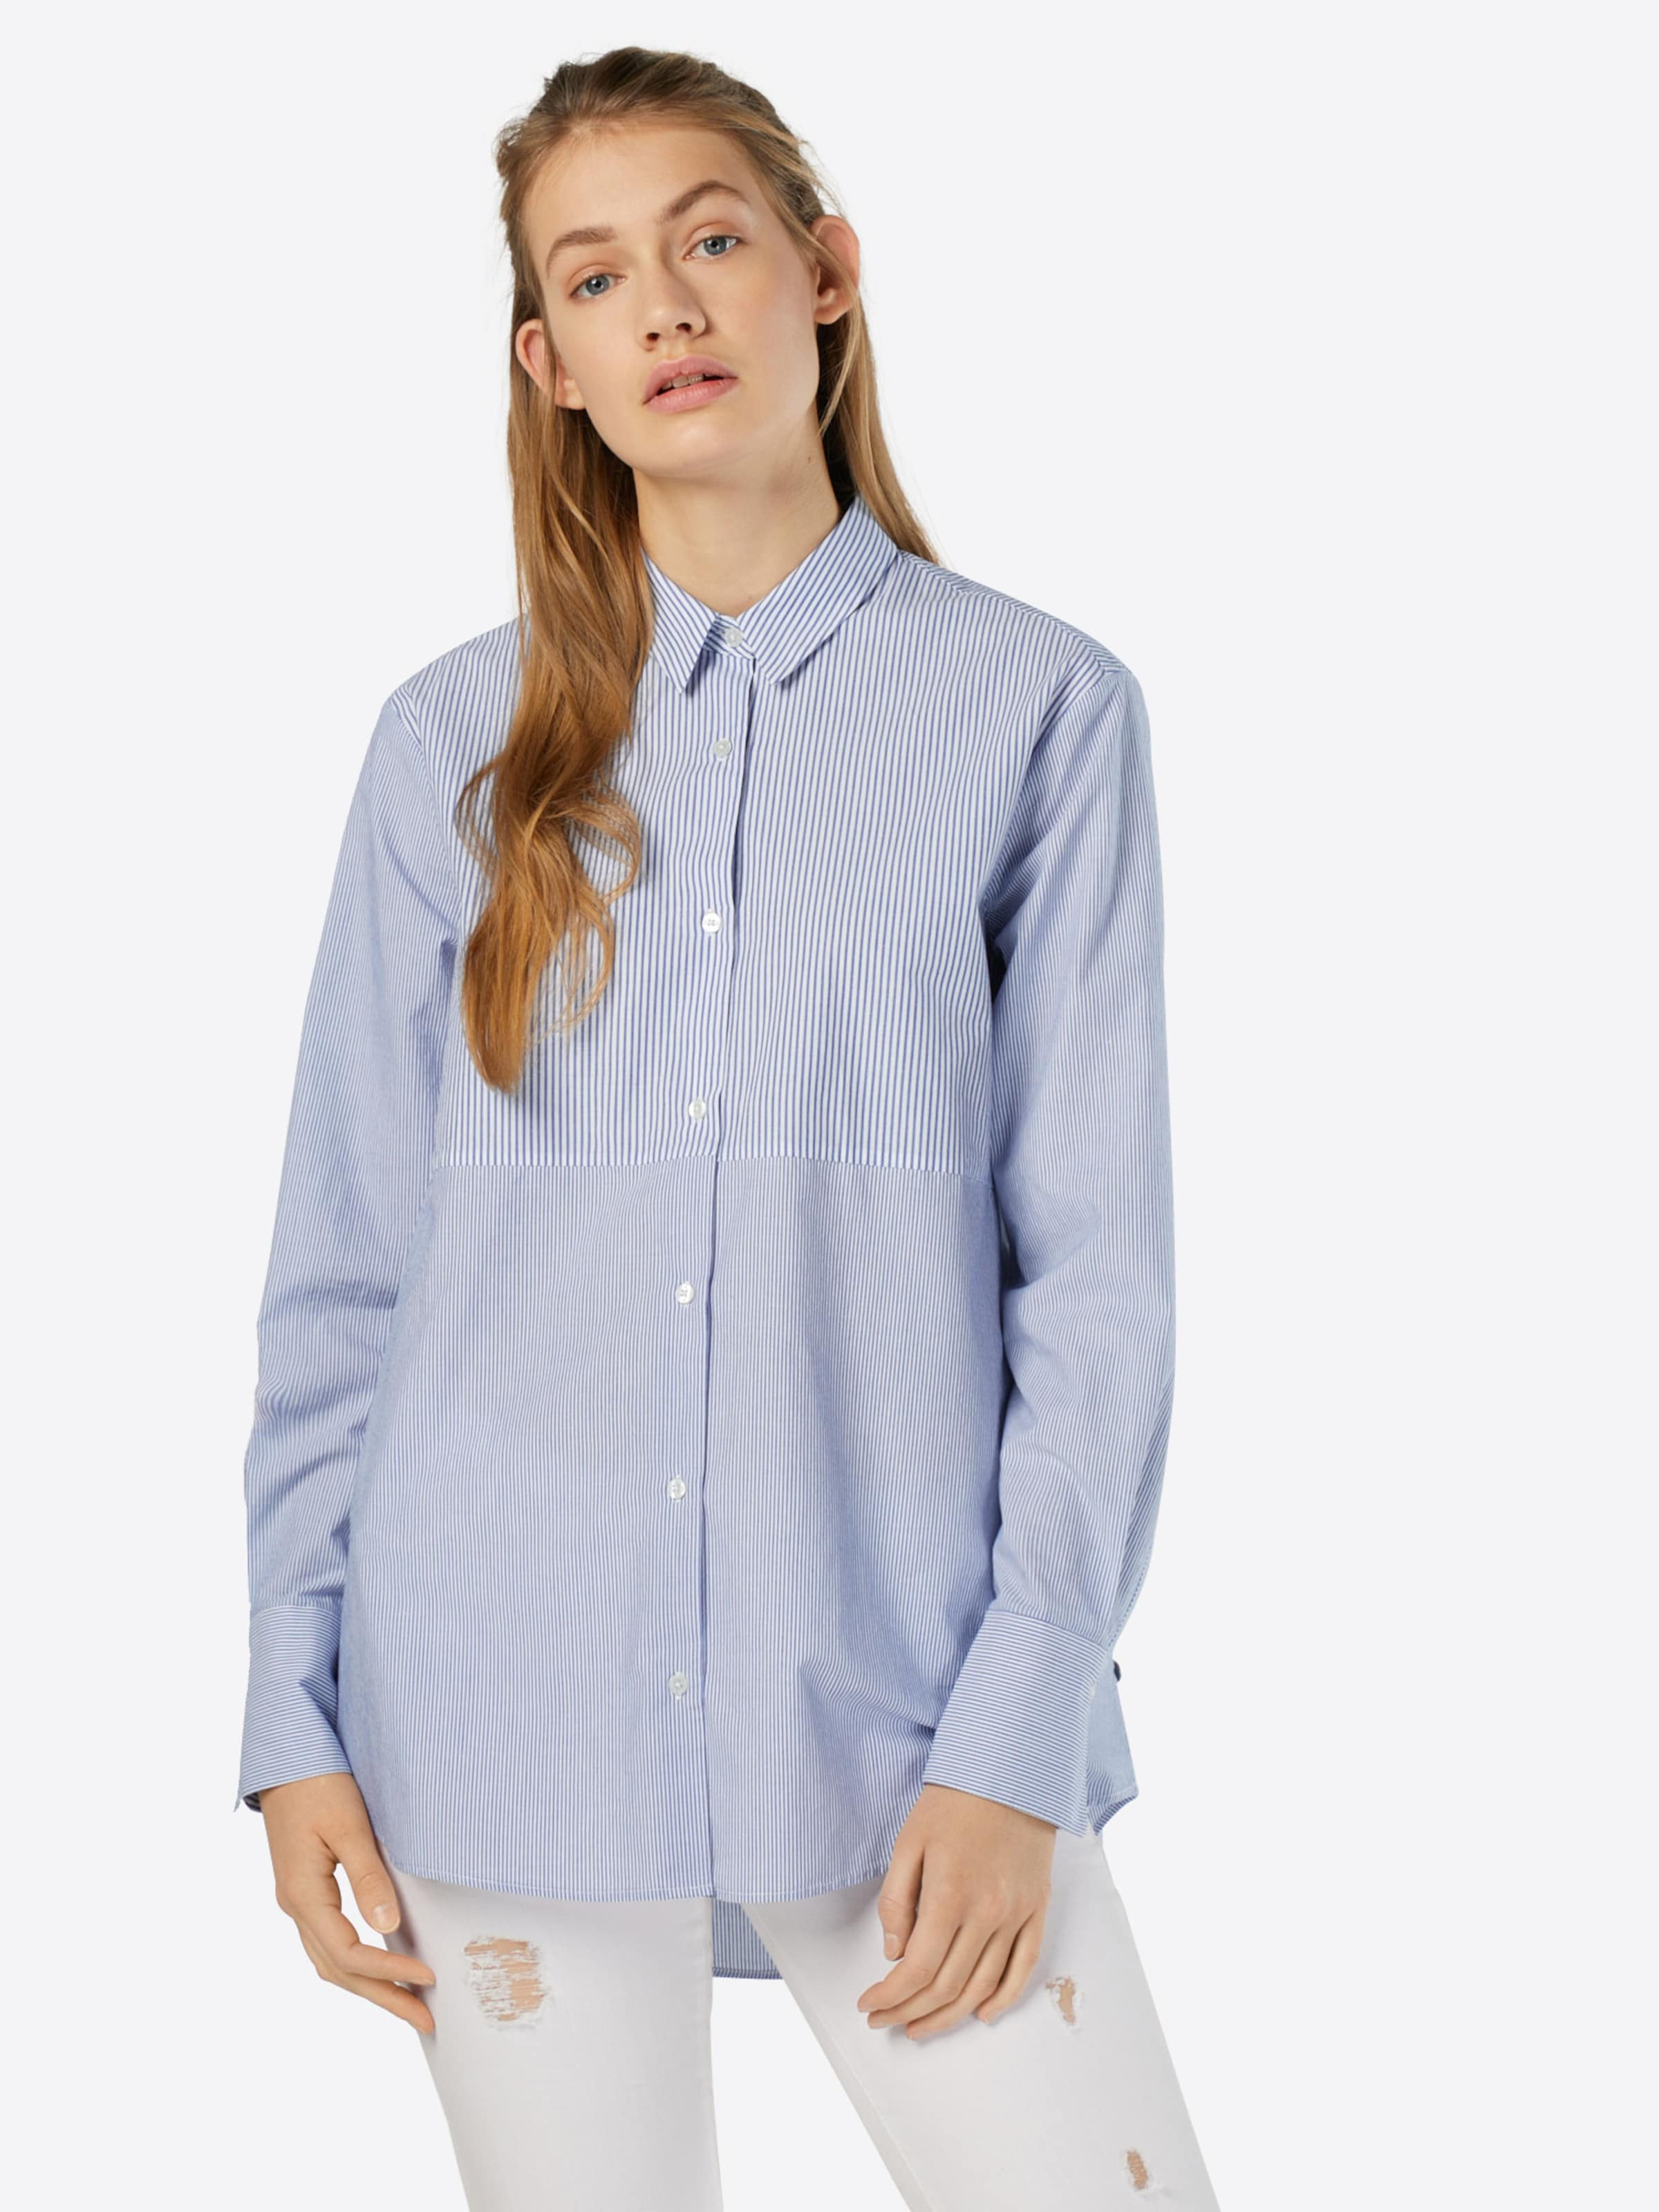 Pepe Jeans Bluse 'OEIL' Niedrigster Preis Verkauf Online Grau-Outlet-Store Online 7T9PMe